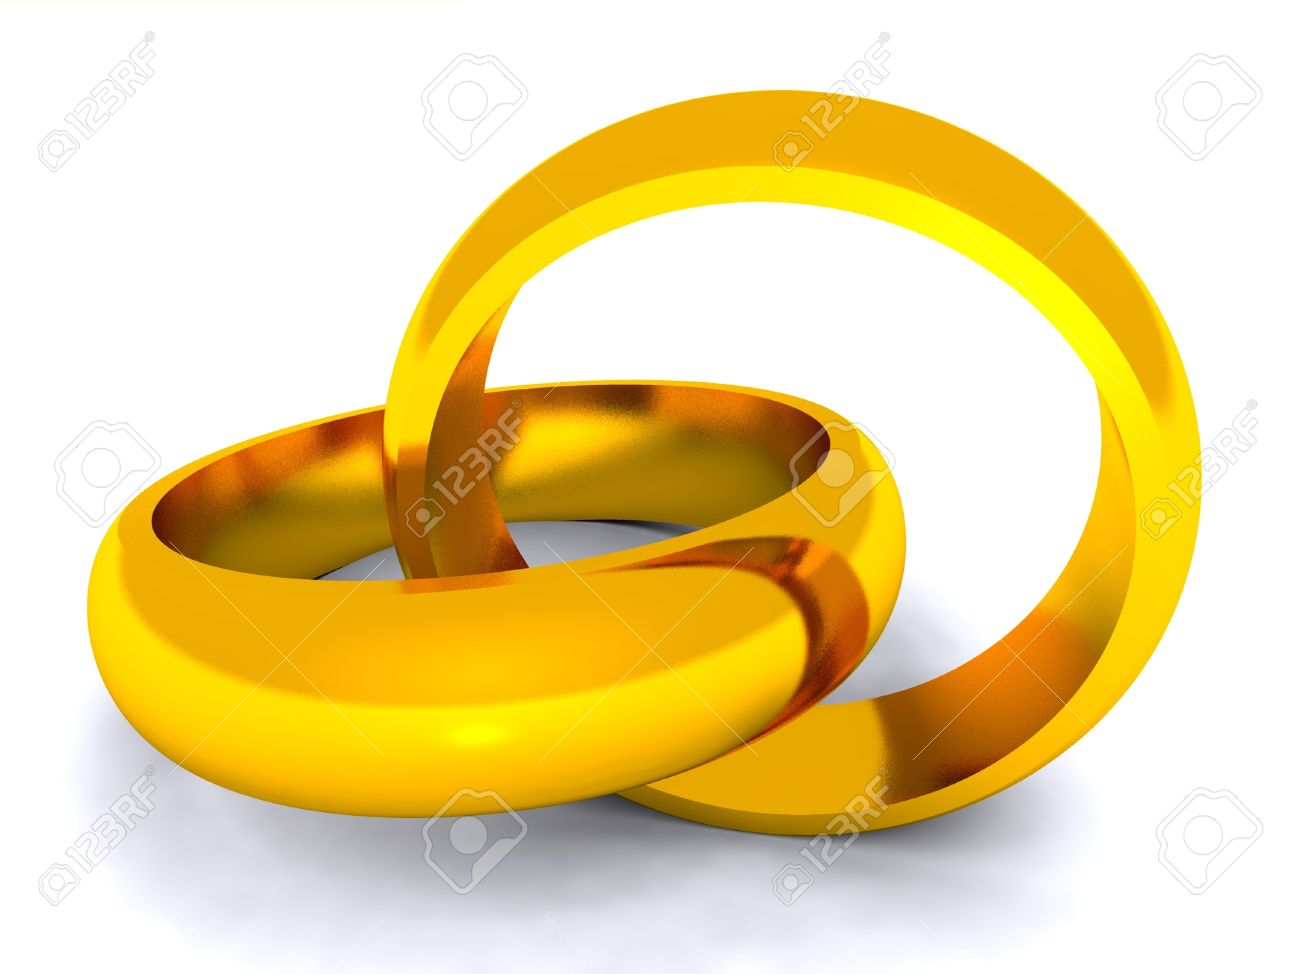 Wedding Rings Entwined